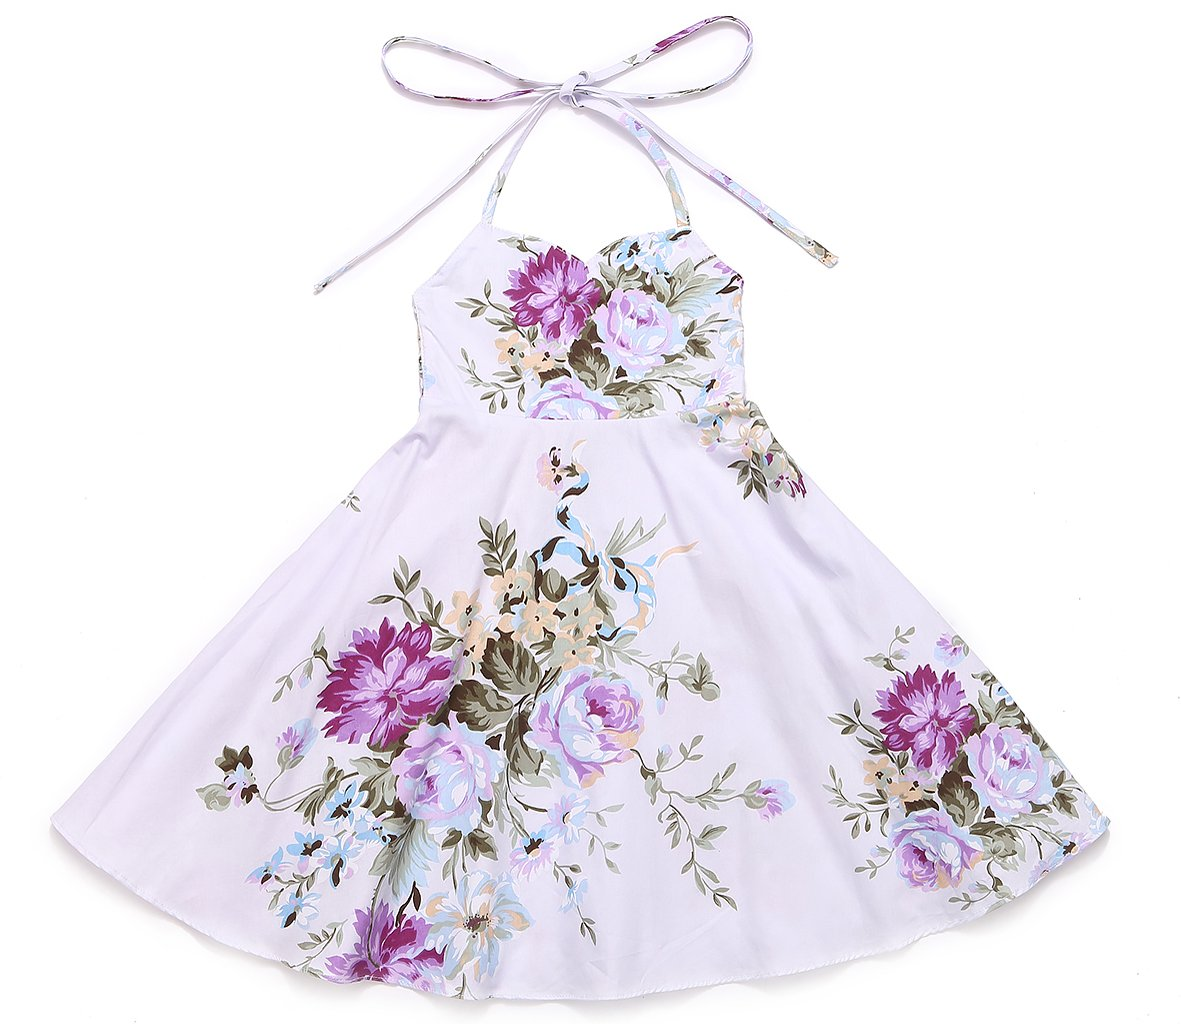 Flofallzique Vintage Floral Girls Dress Summer Birthday Party Dress Kids (5, Purple)